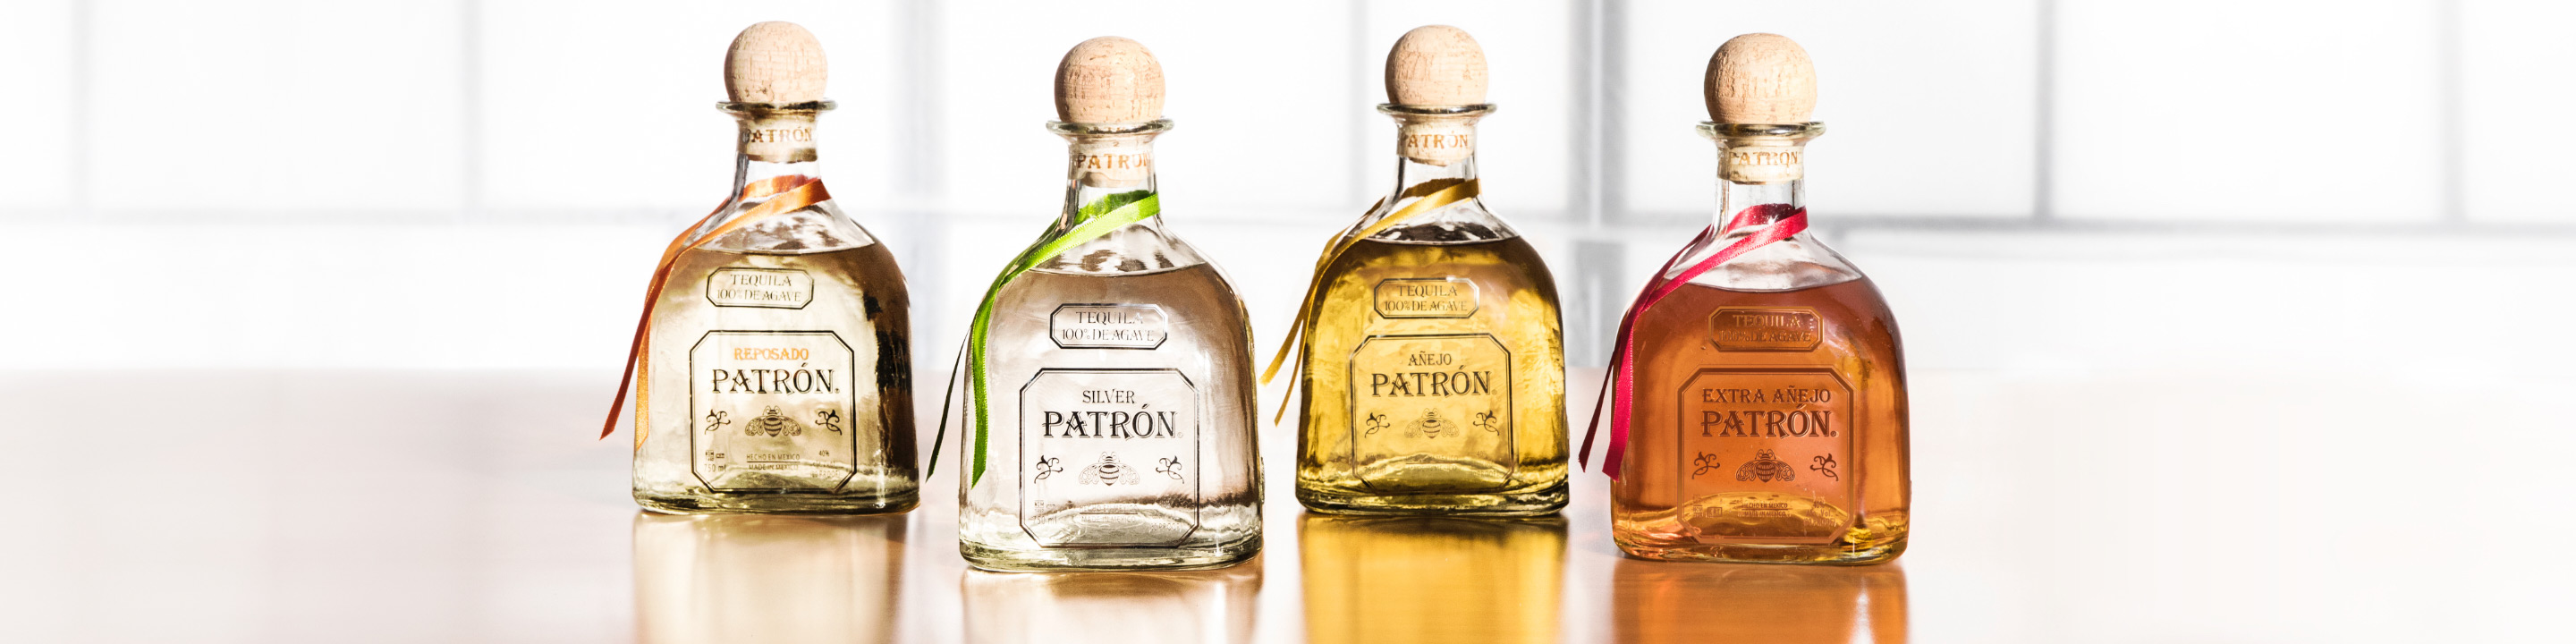 The world's first ultra-premium tequila, PATRÓN tequila is made using a handcrafted, time-honored distillation process and only the best 100% Weber Blue Agave. This results in the perfect balance of fresh agave flavor with baked agave undertones. To top it off, PATRÓN is made with 0% additives and never uses Glycerin, Caramel coloring, Oak Extract or Jarabe, a sugar-based syrup, in our tequila. We have achieved a smooth, delicious taste profile and complex flavor without the use of additives from the very beginning and believe our community deserves to know what they are enjoying in every glass of PATRÓN tequila. Buy Patron online now from nearby liquor stores via Minibar Delivery.